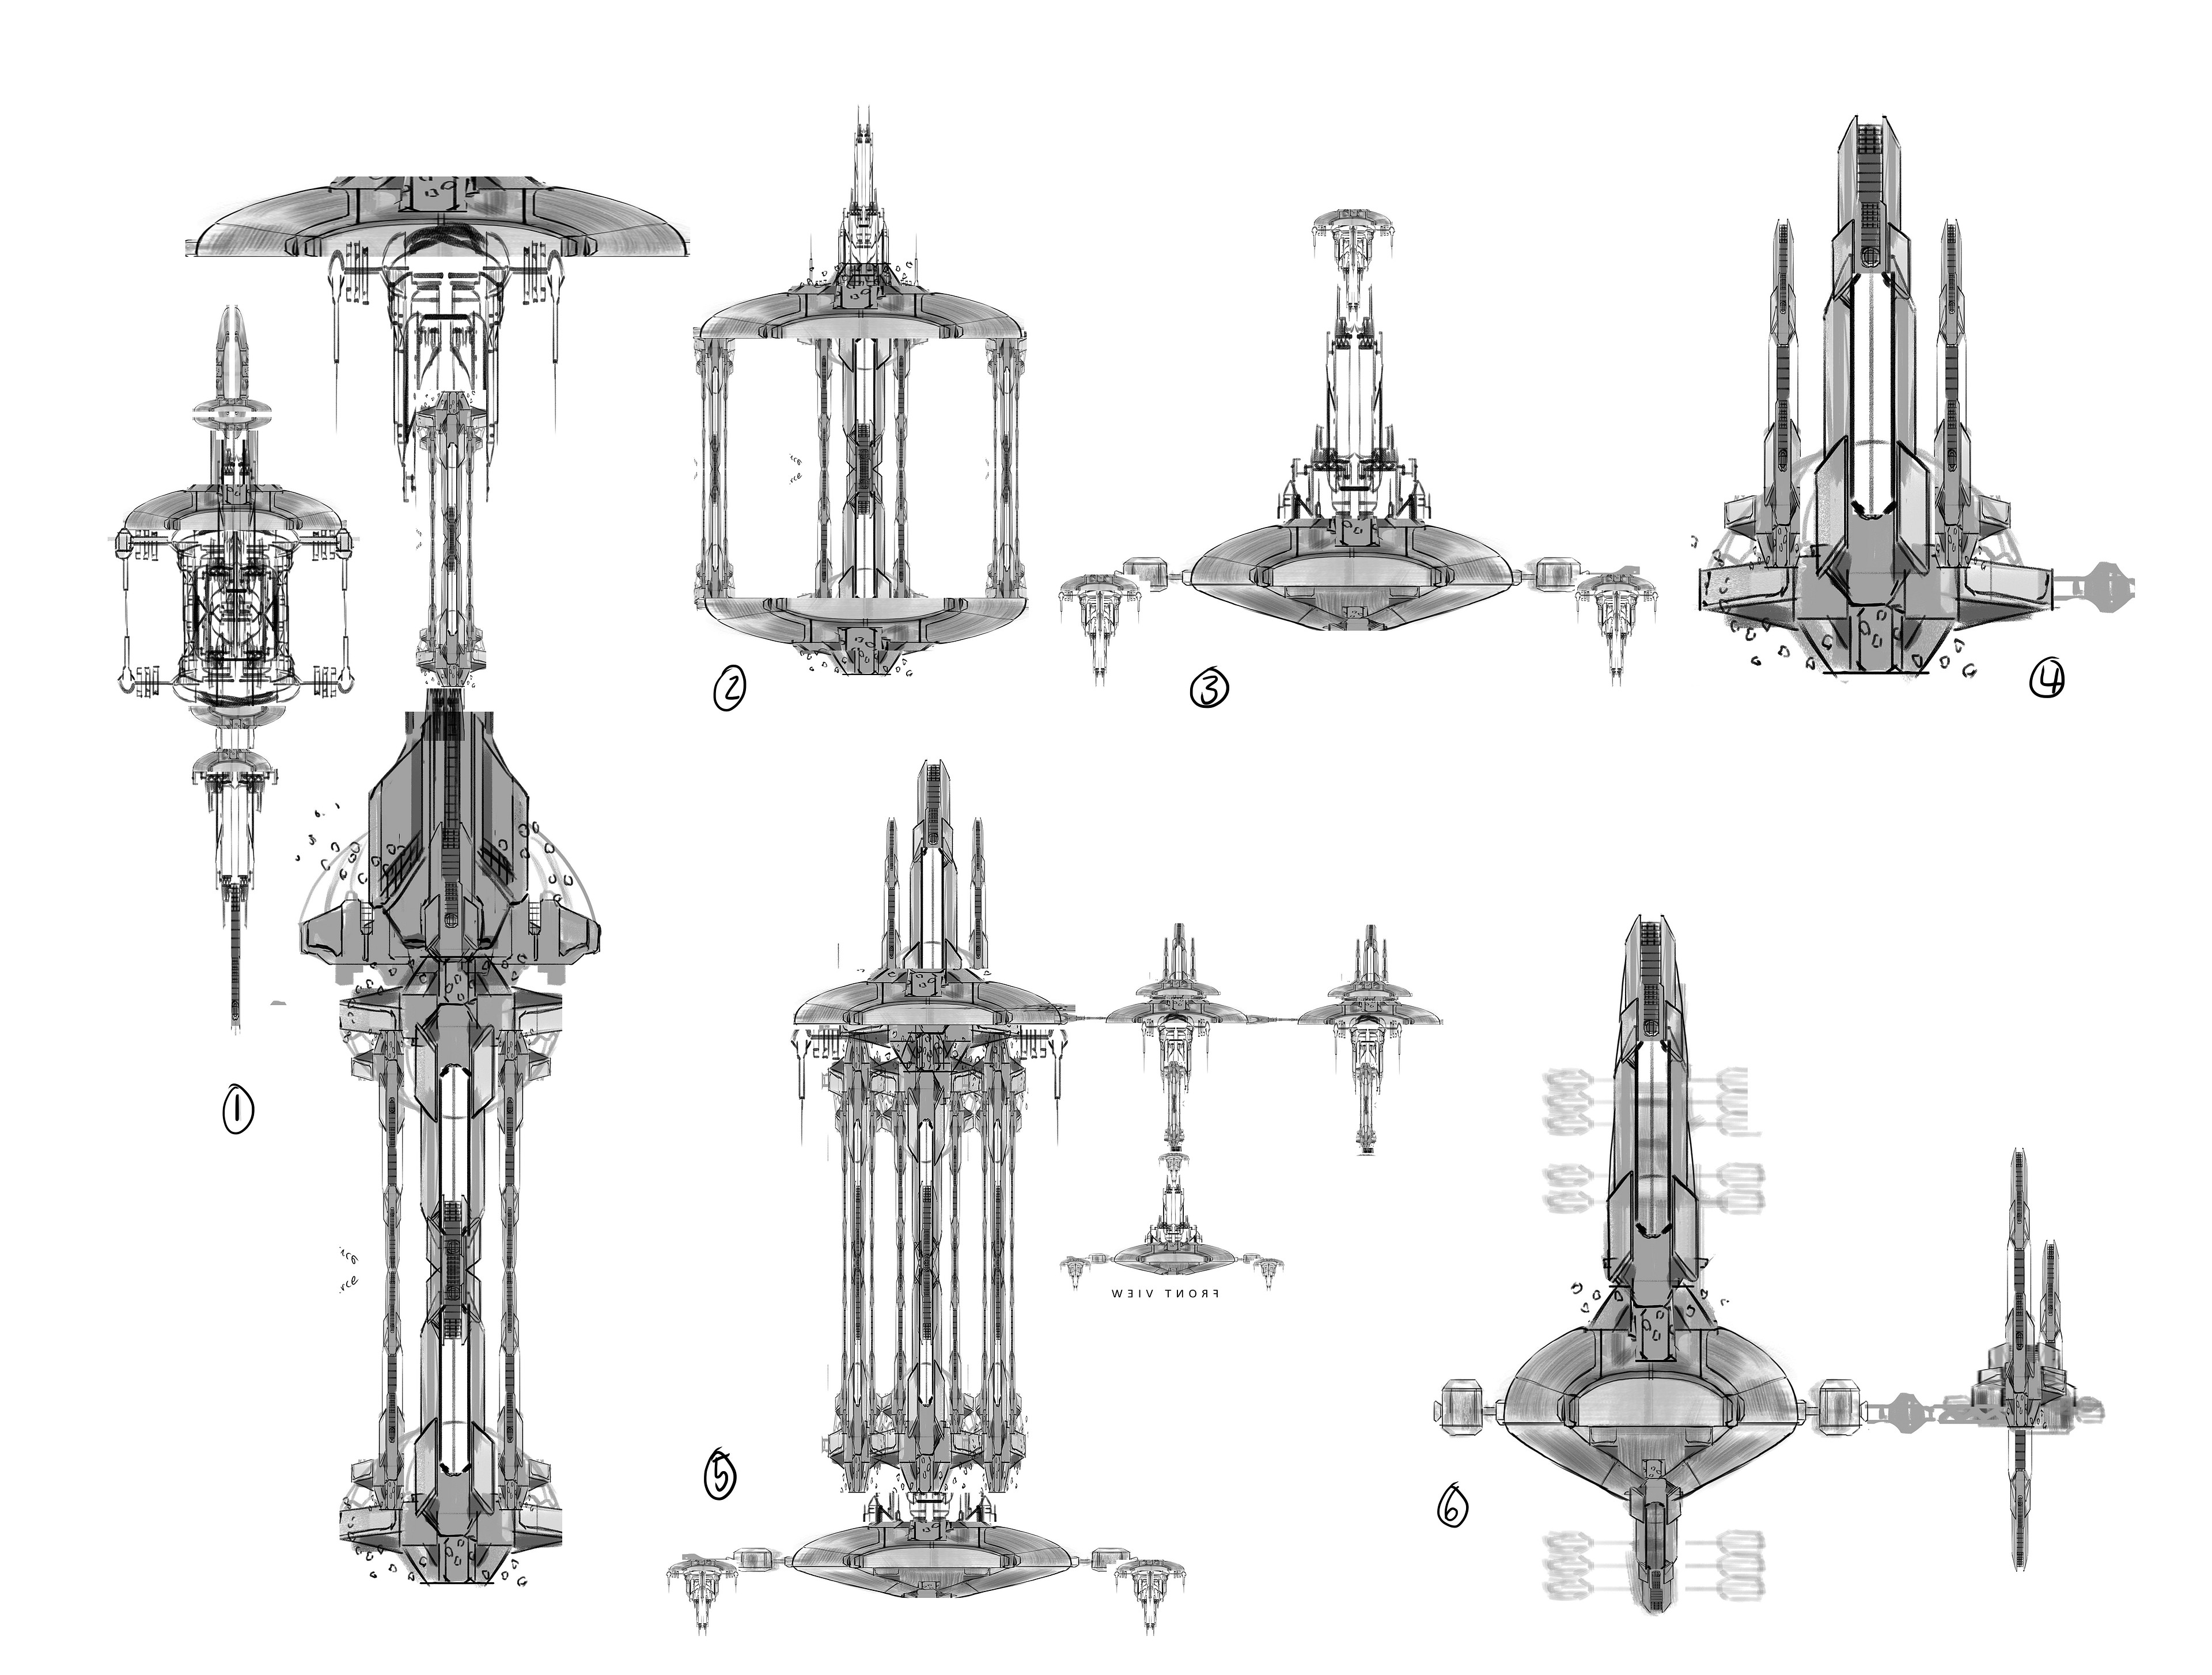 A few of the design sketches